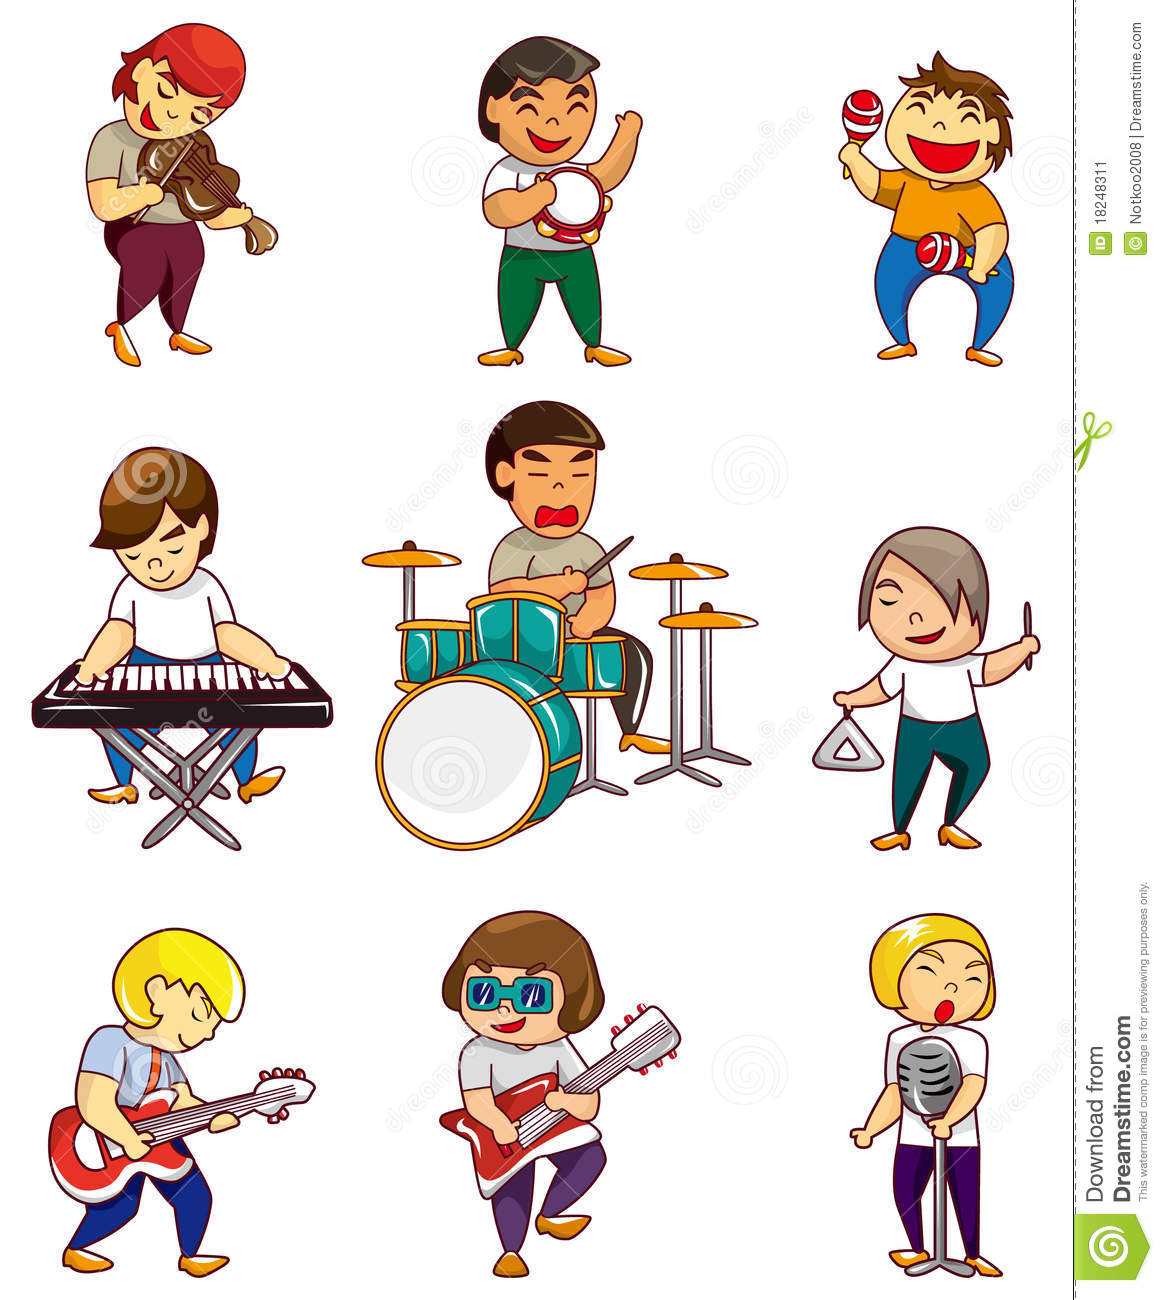 Cartoon Rock Band Icon Stock Image - Image: 18248311